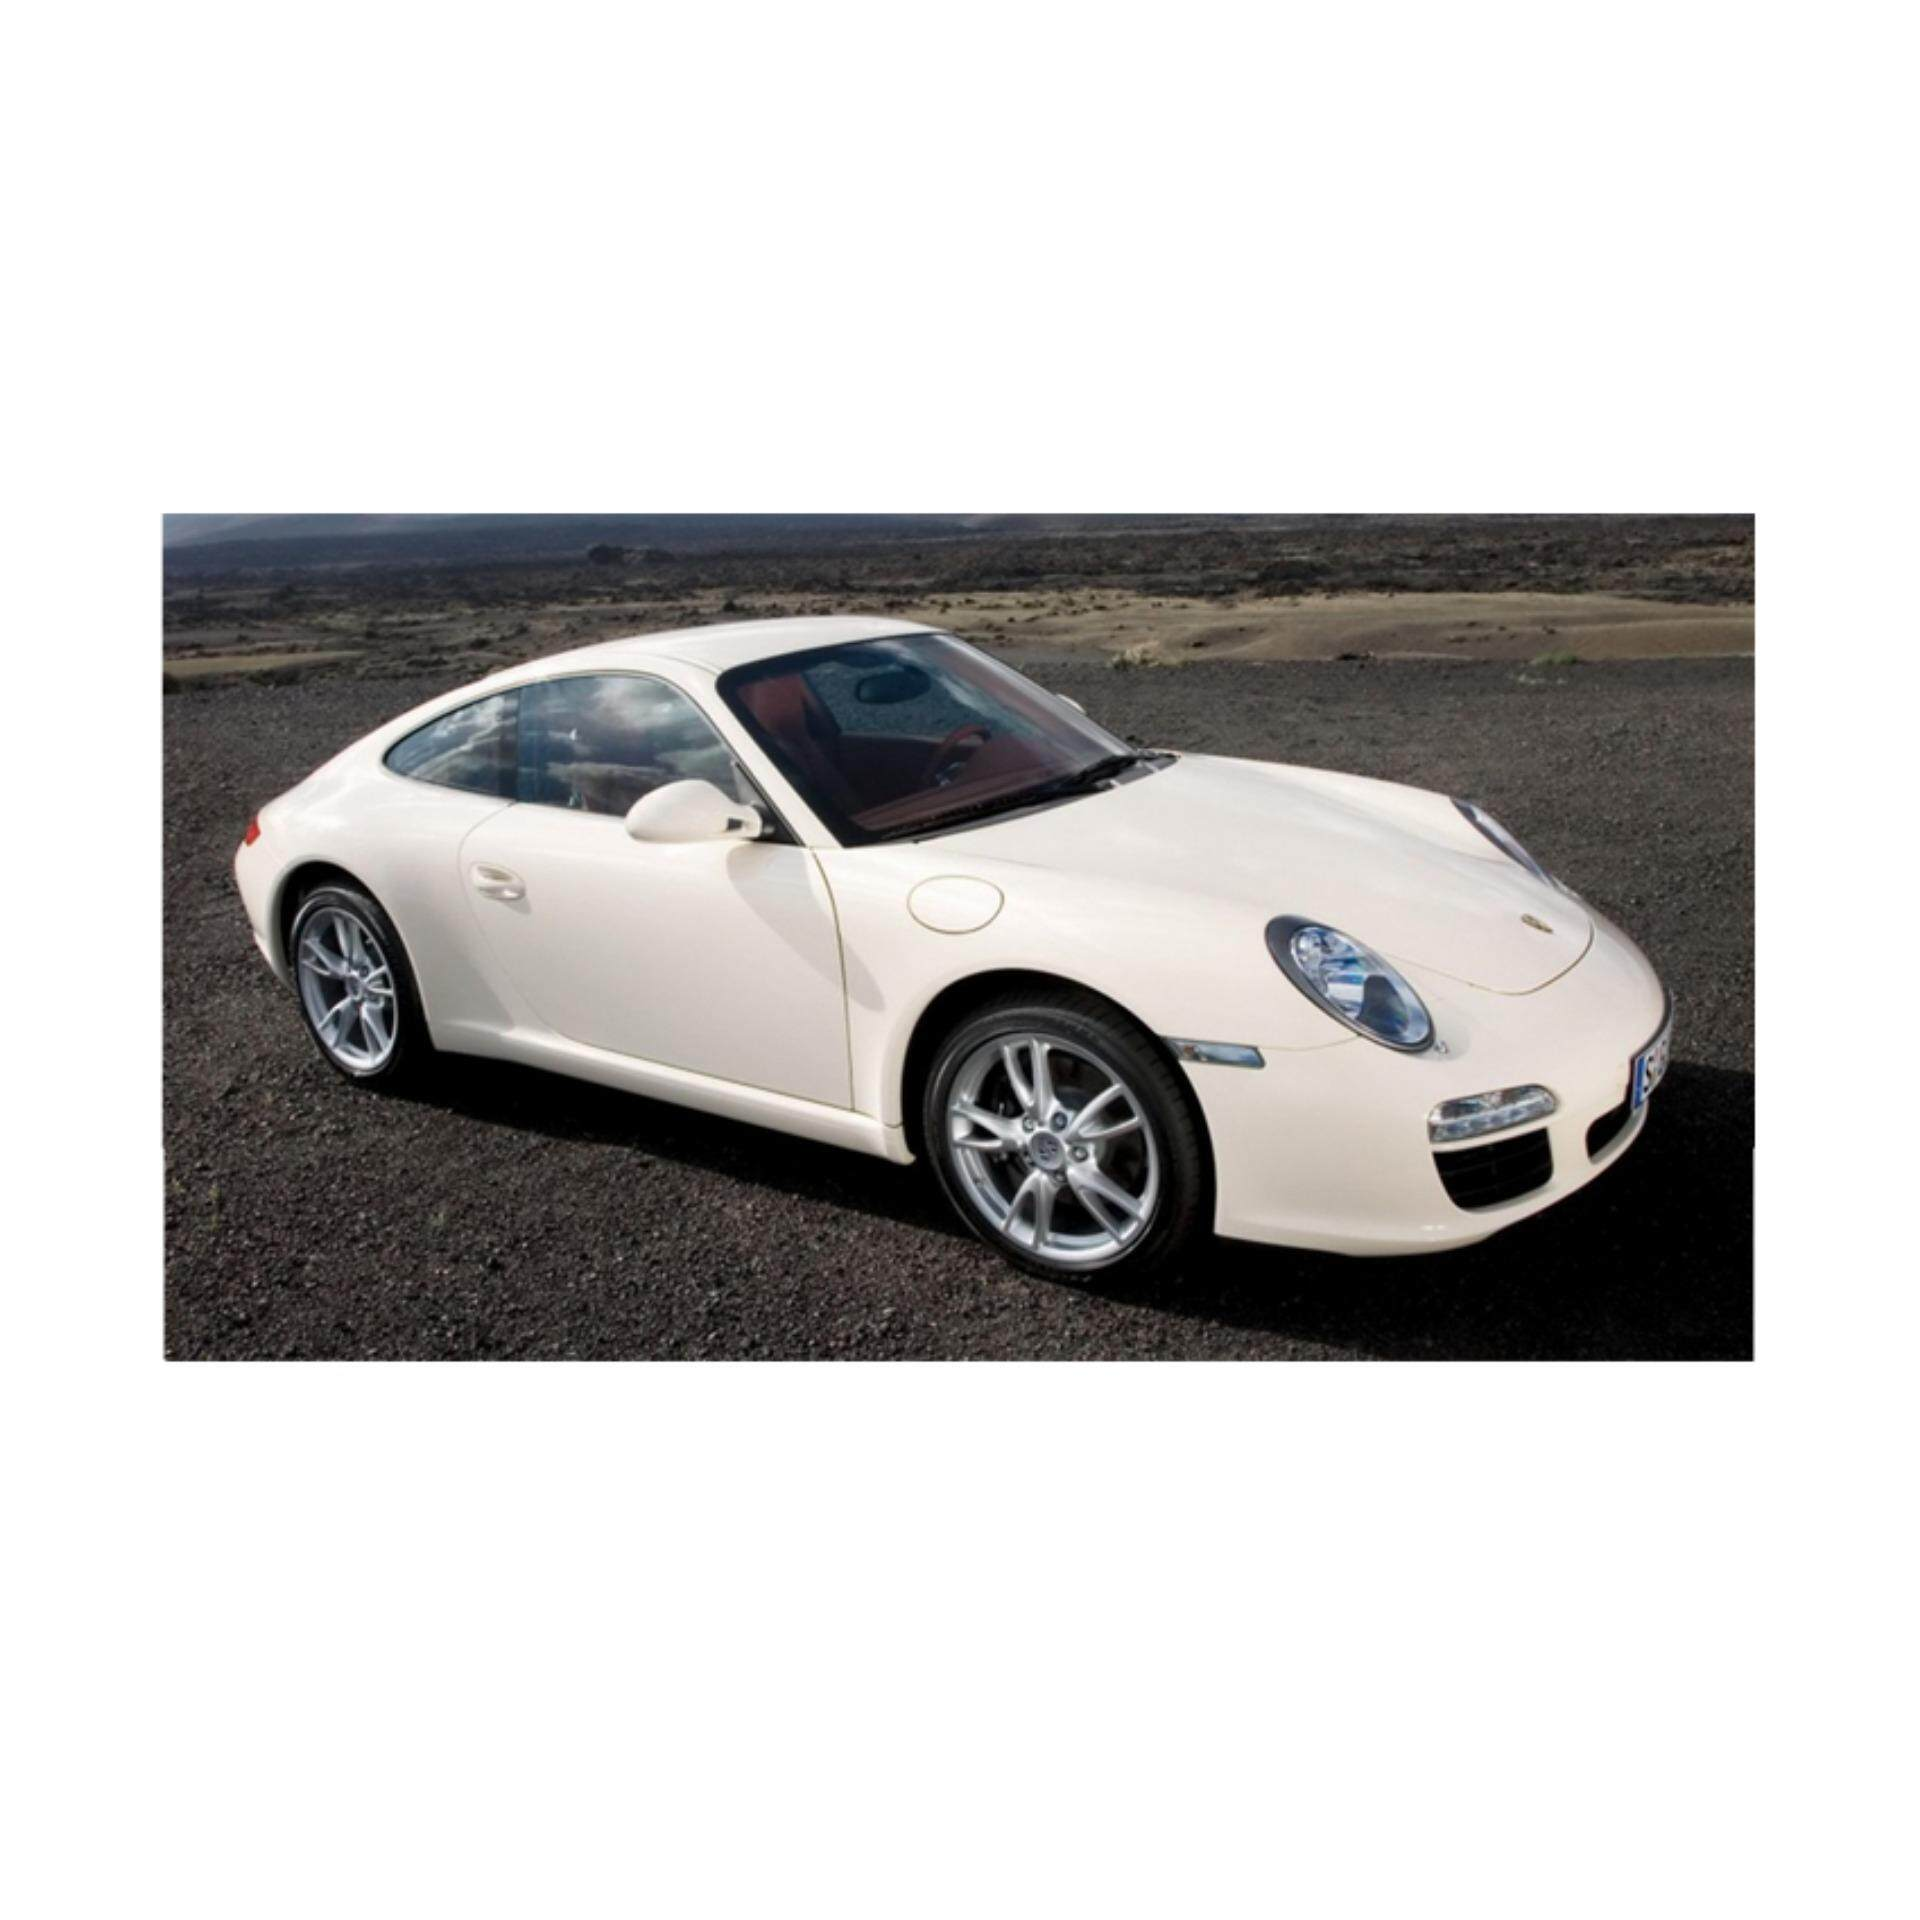 Porsche 911 Carrera,High Quality Universal Fit Single Layer Car Cover Water  Repellent,100% UV Resistant,Breathable